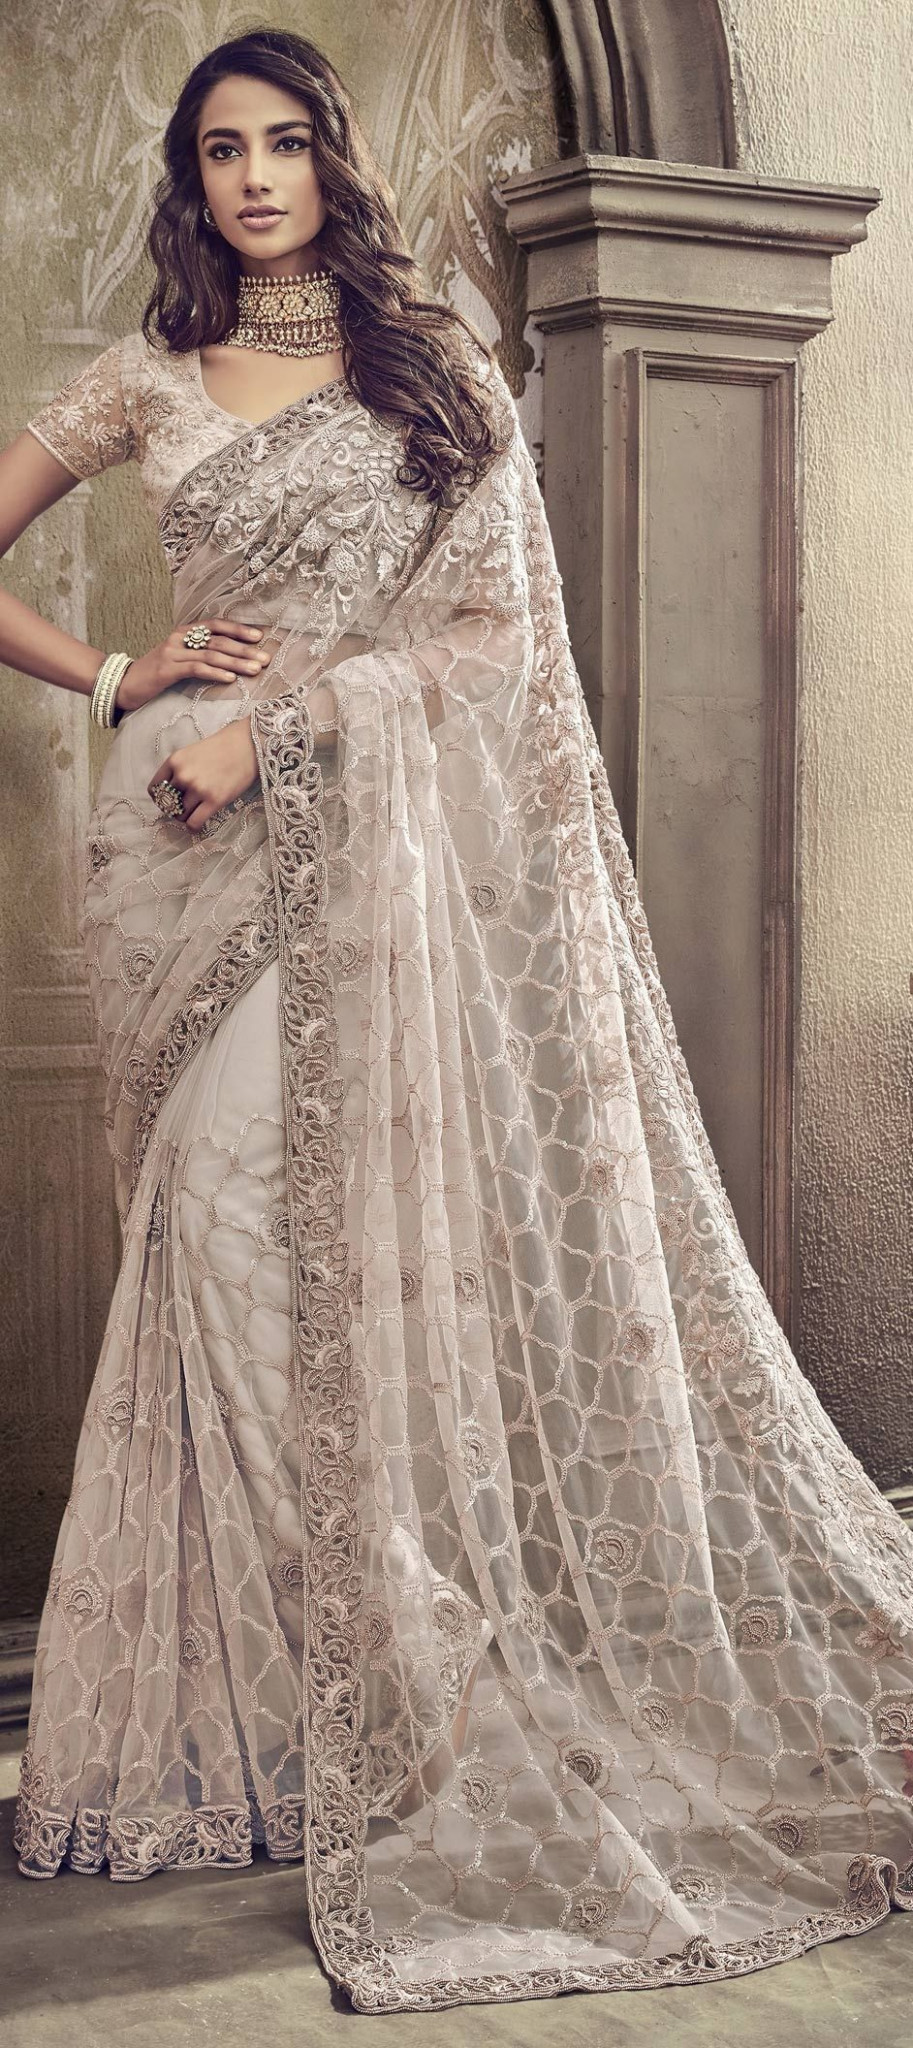 Bridal, Wedding White and Off White color Net fabric Saree